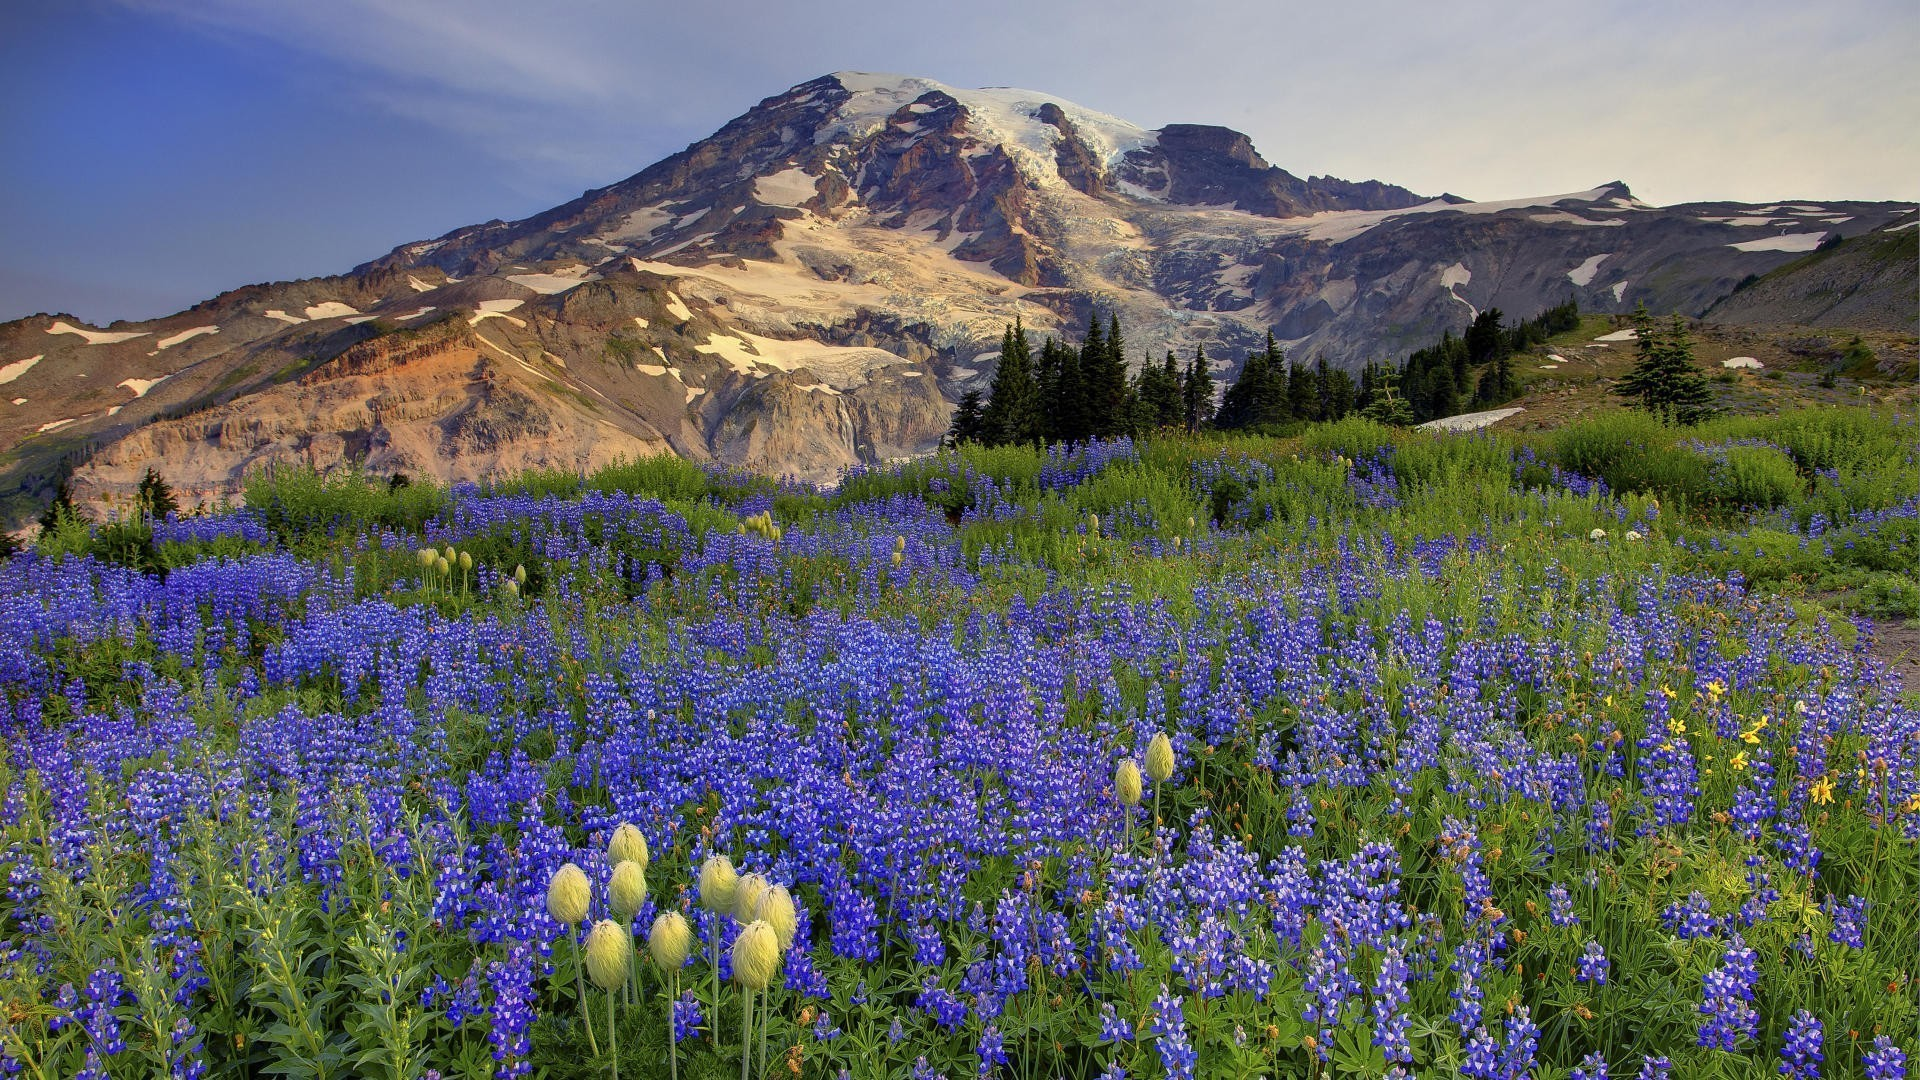 1920x1080 Mount Rainier Washington Felder wallpaper